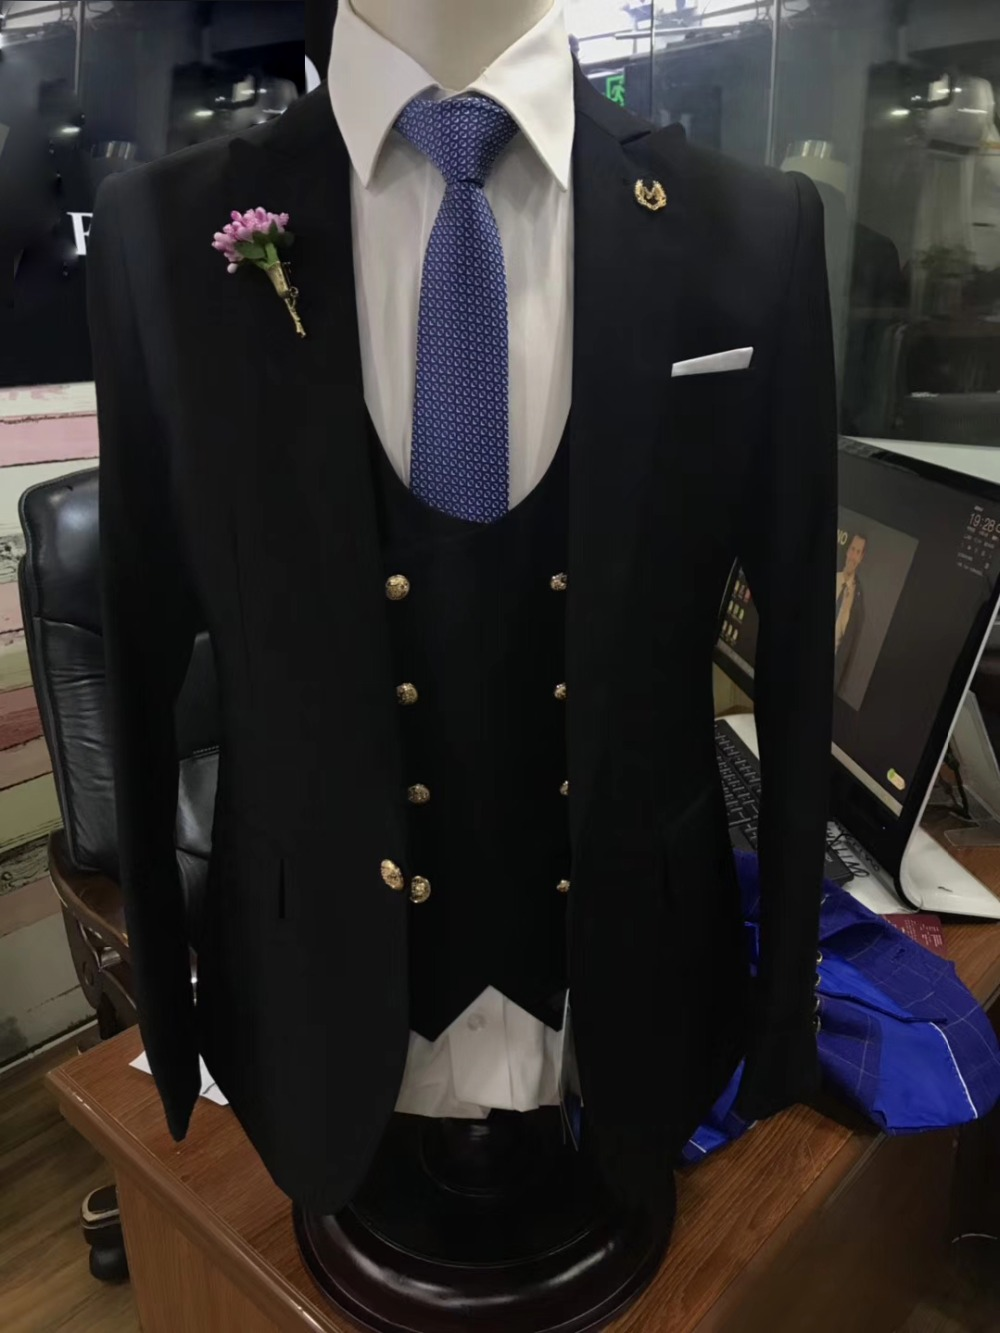 Black-Slim-Fit-Tuxedos-Groom-Wedding-Suits-For-Men-New-Design-Fashion-Formal-Party-Prom-Male (1)